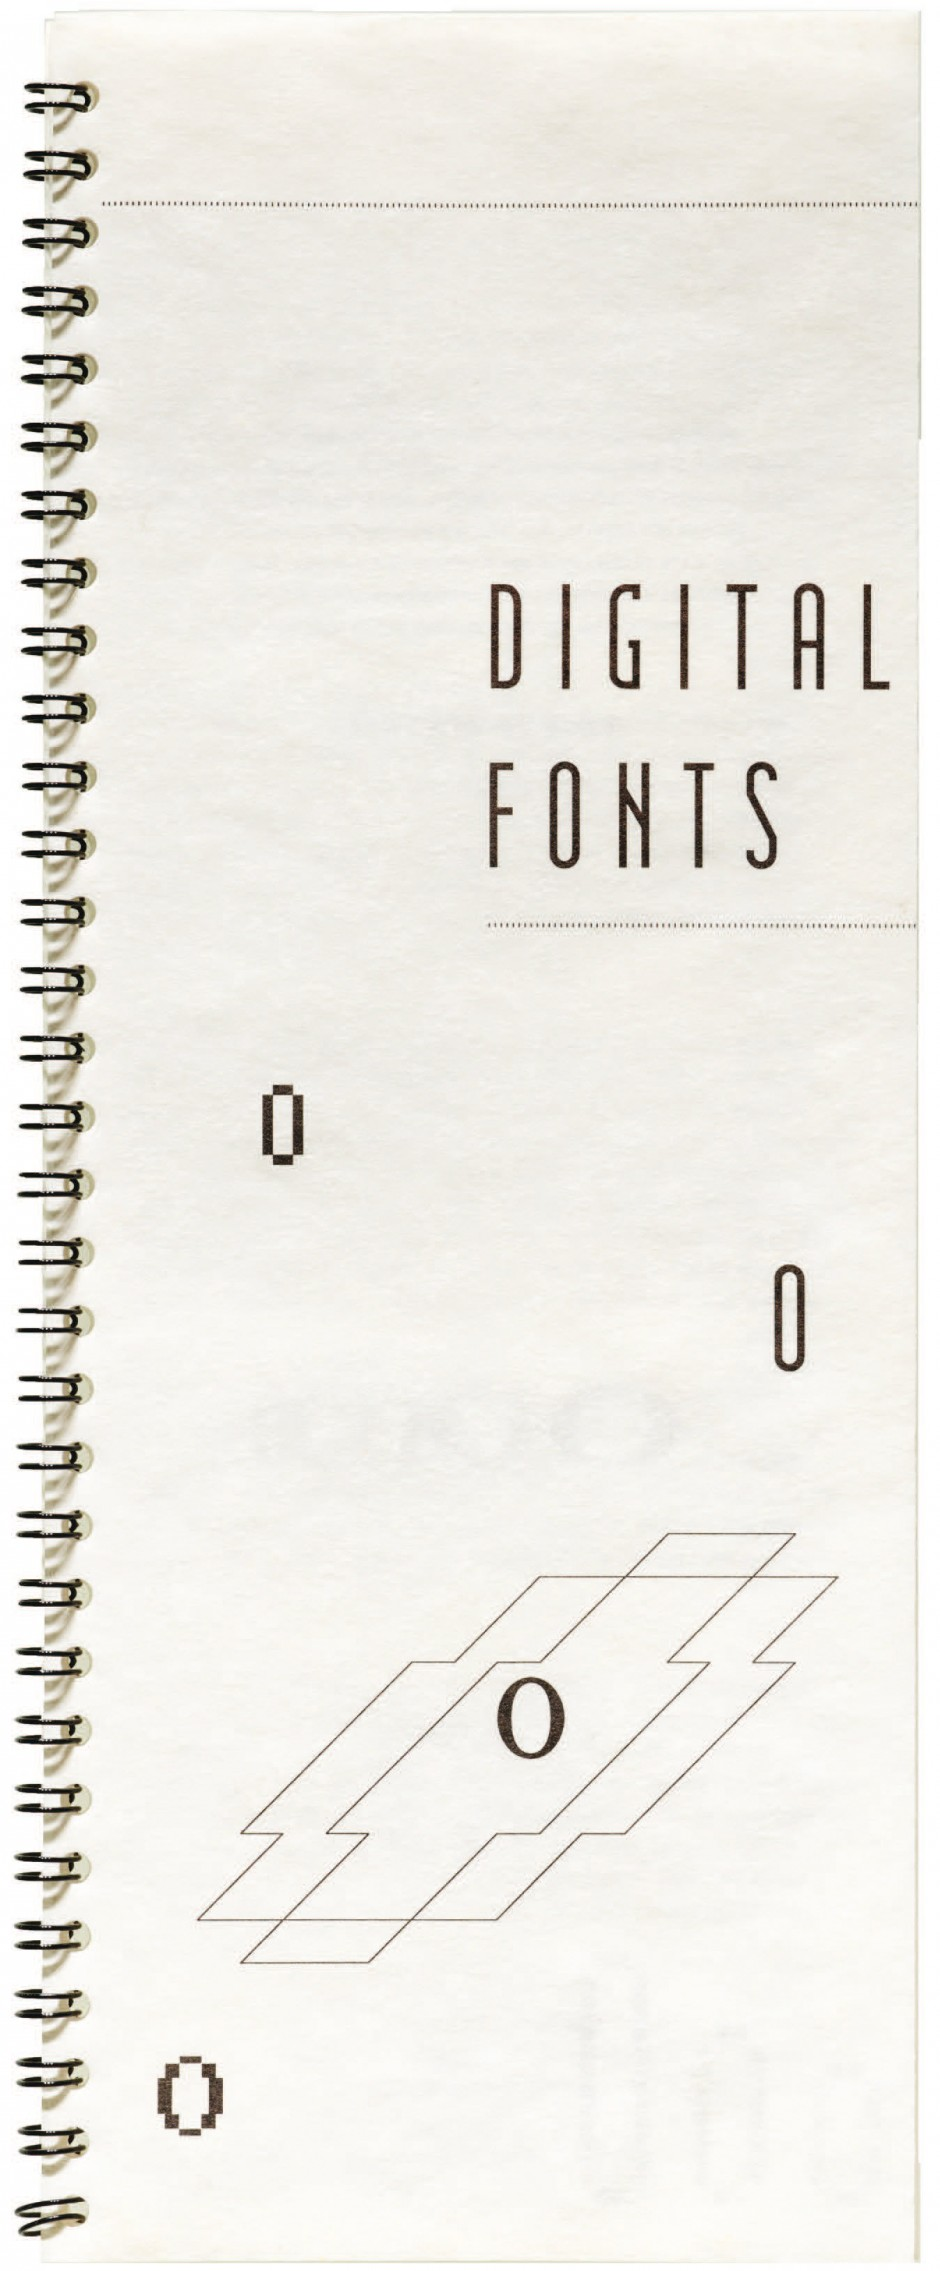 Digital fonts catalog, 1986